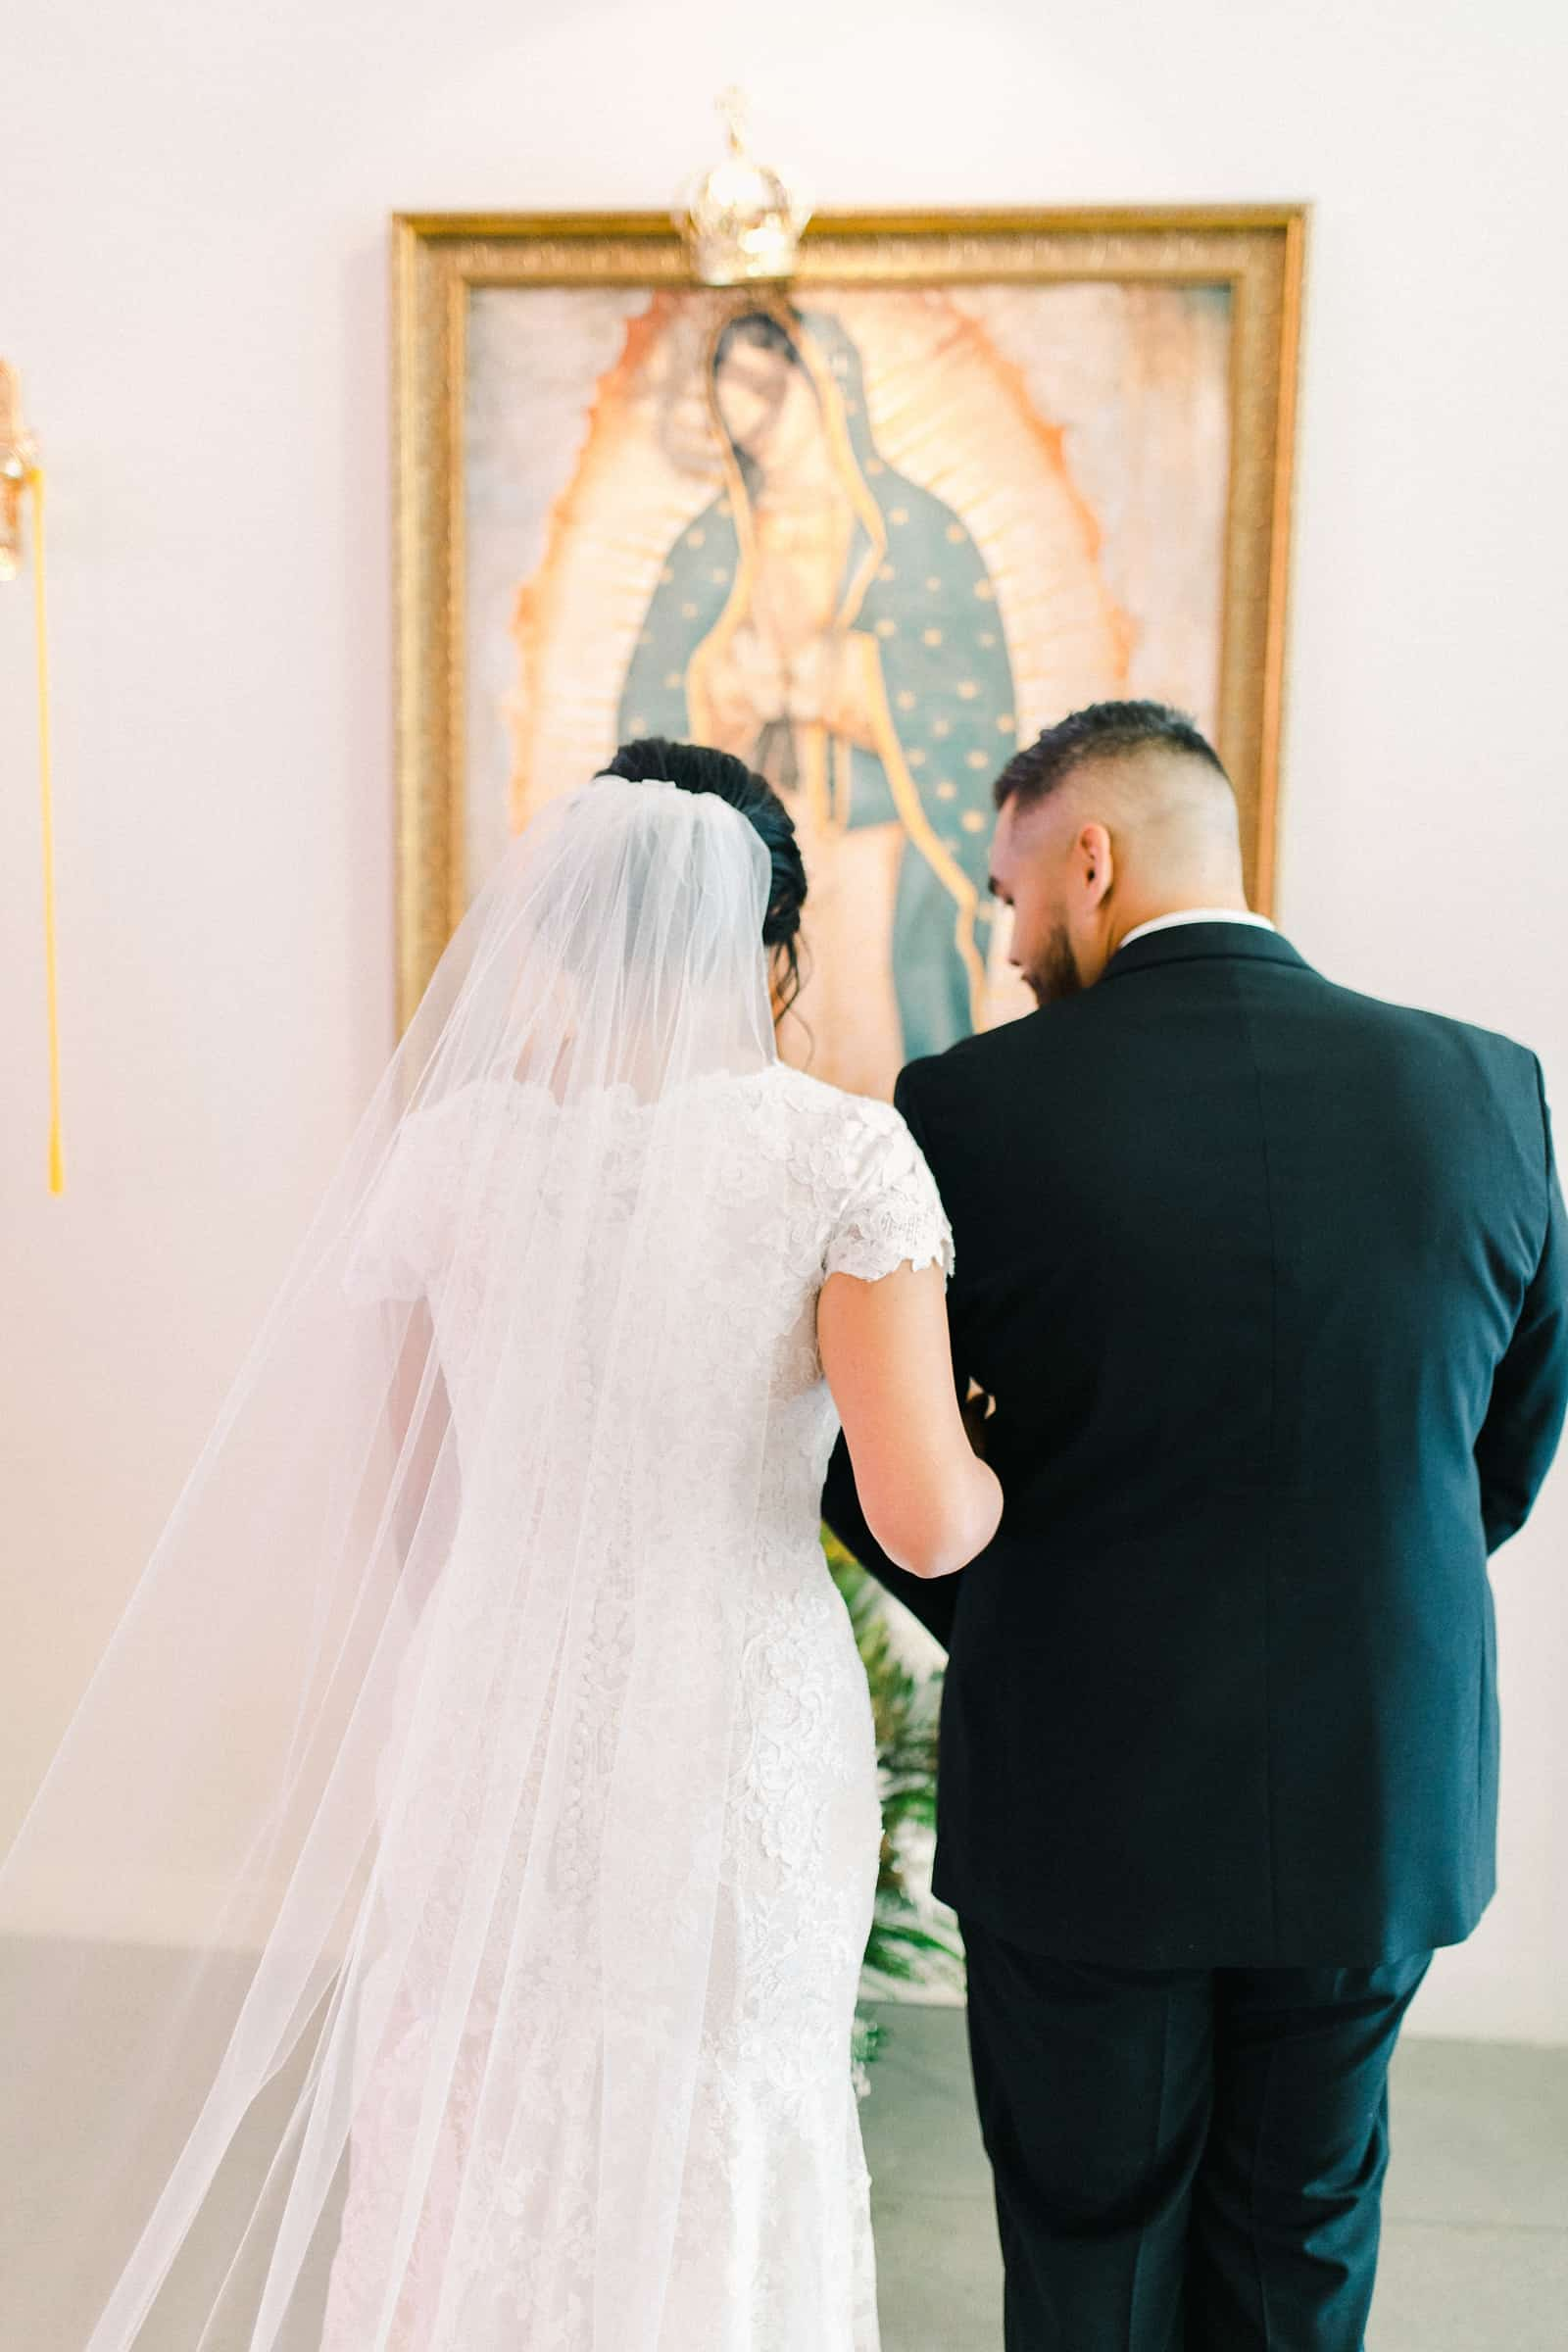 Bride and groom walk out of church together after wedding ceremony